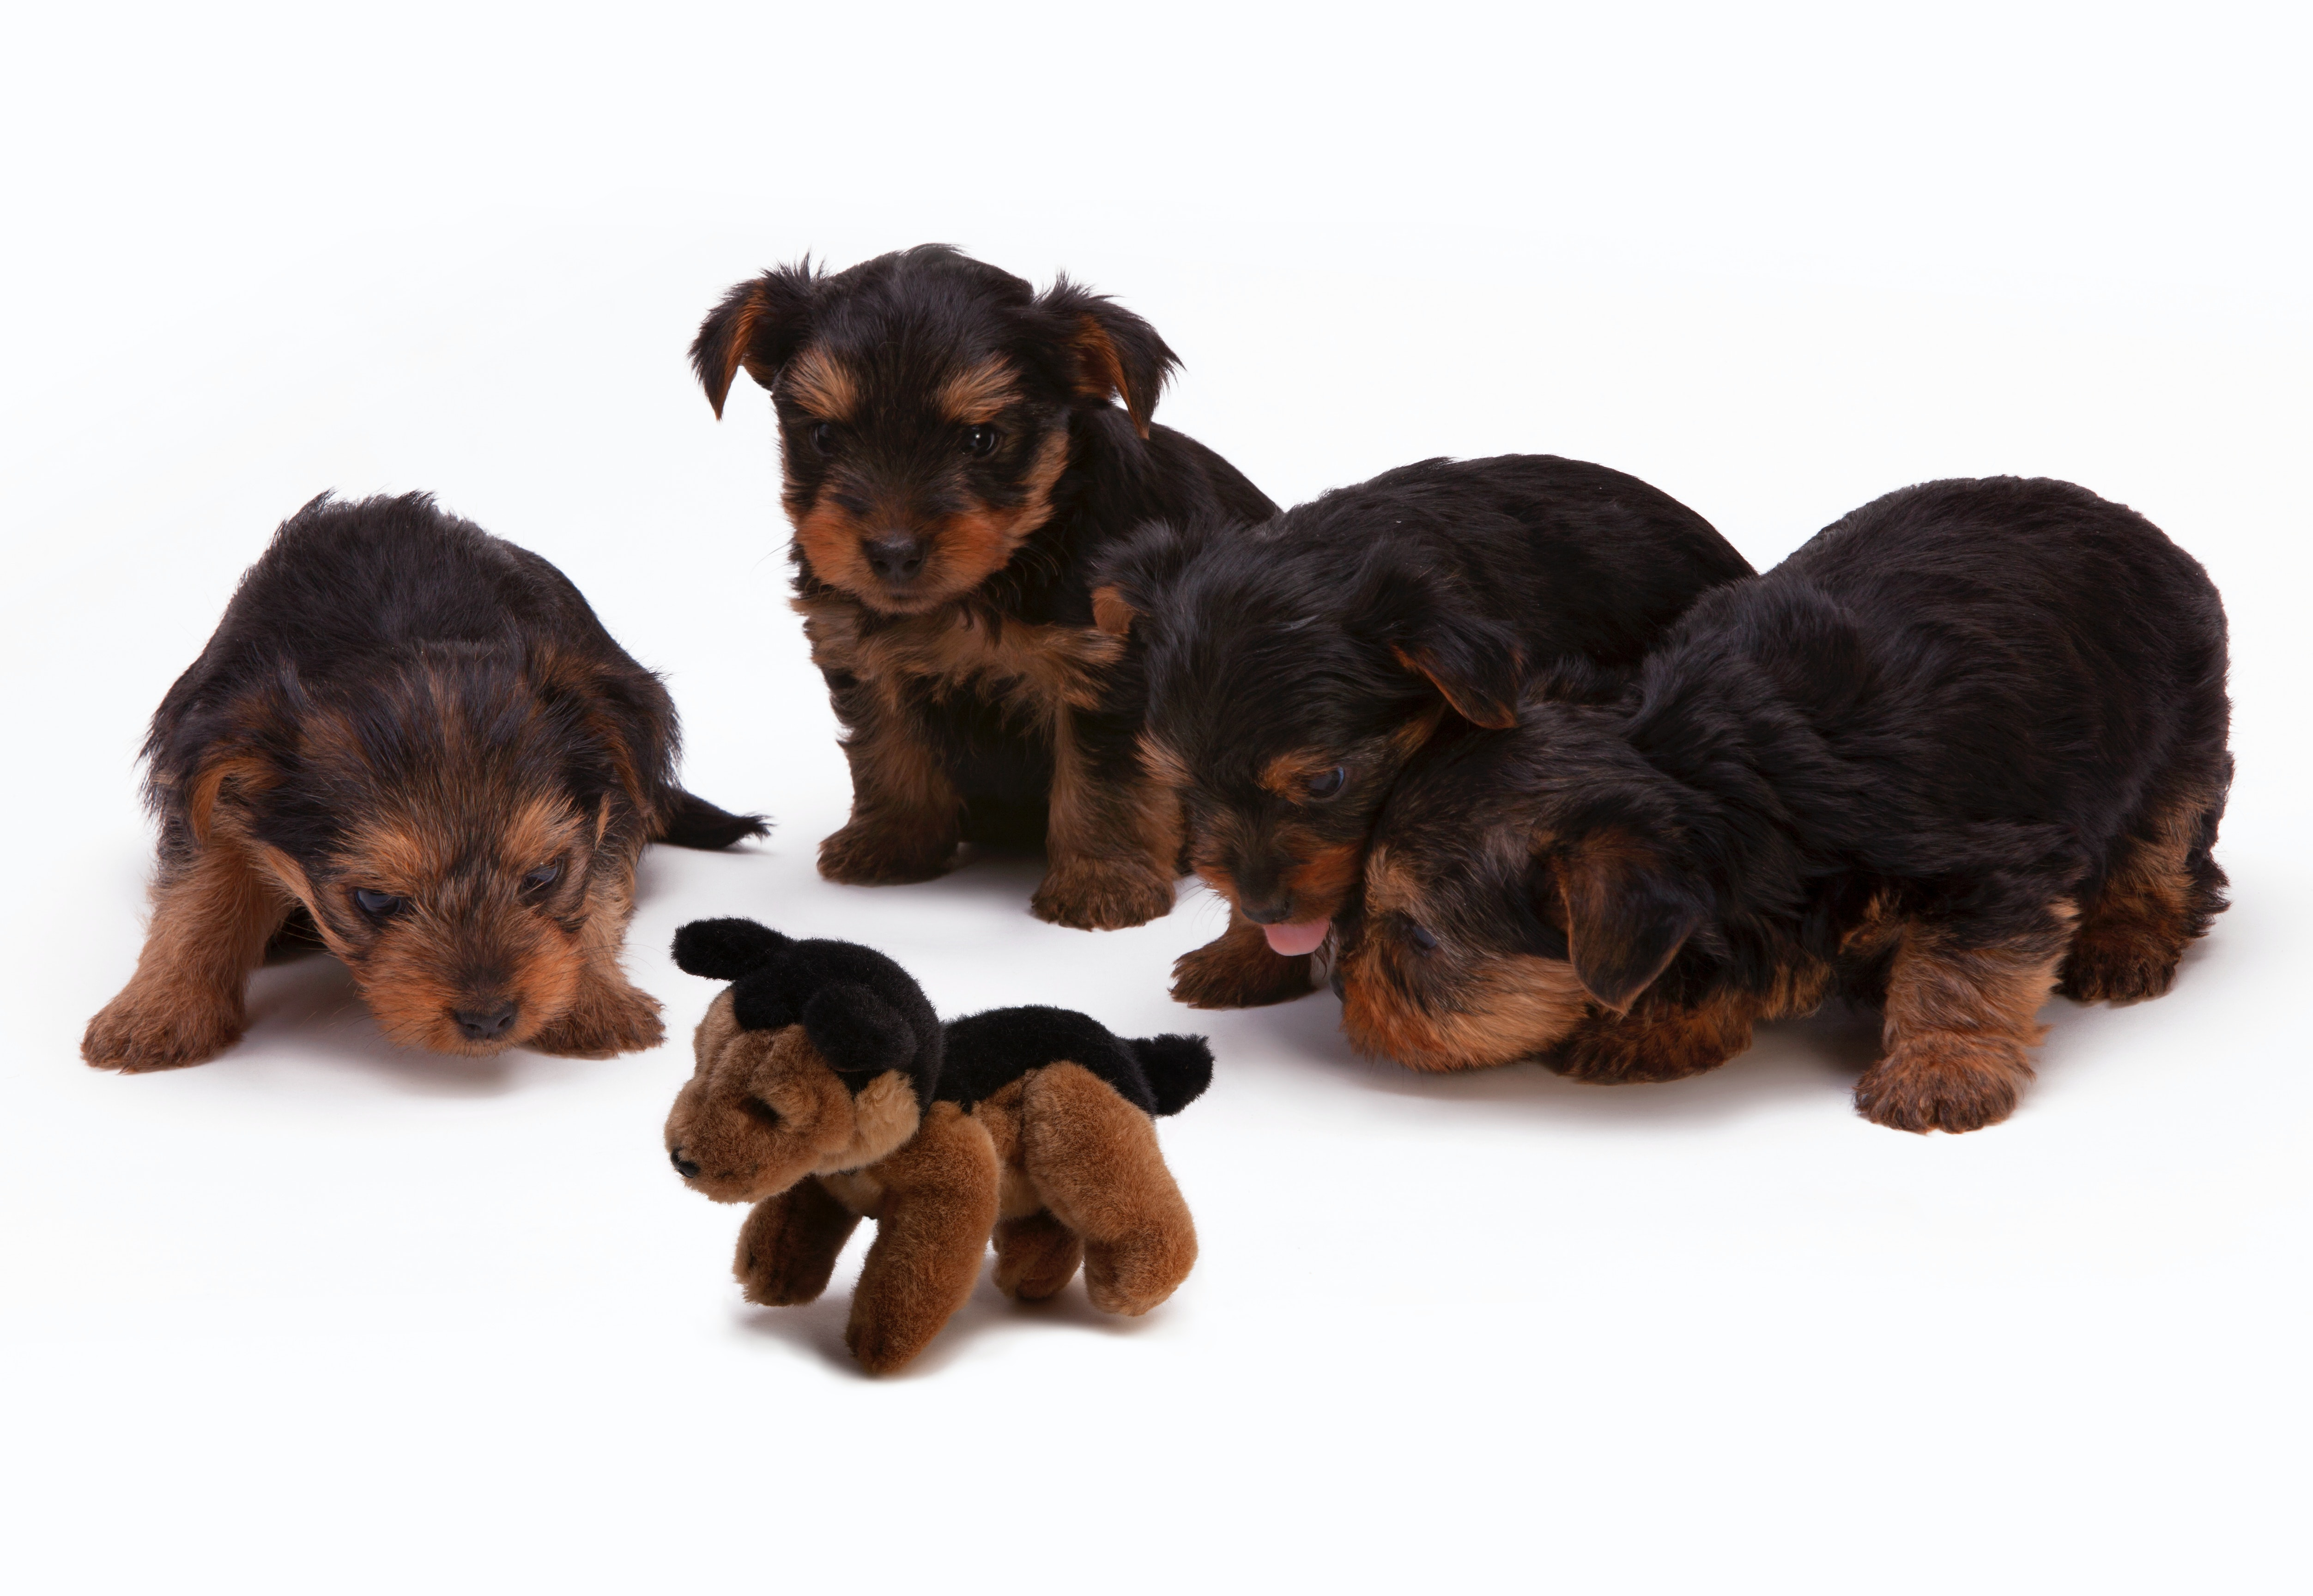 Black And Brown Long Haired Puppies 183 Free Stock Photo